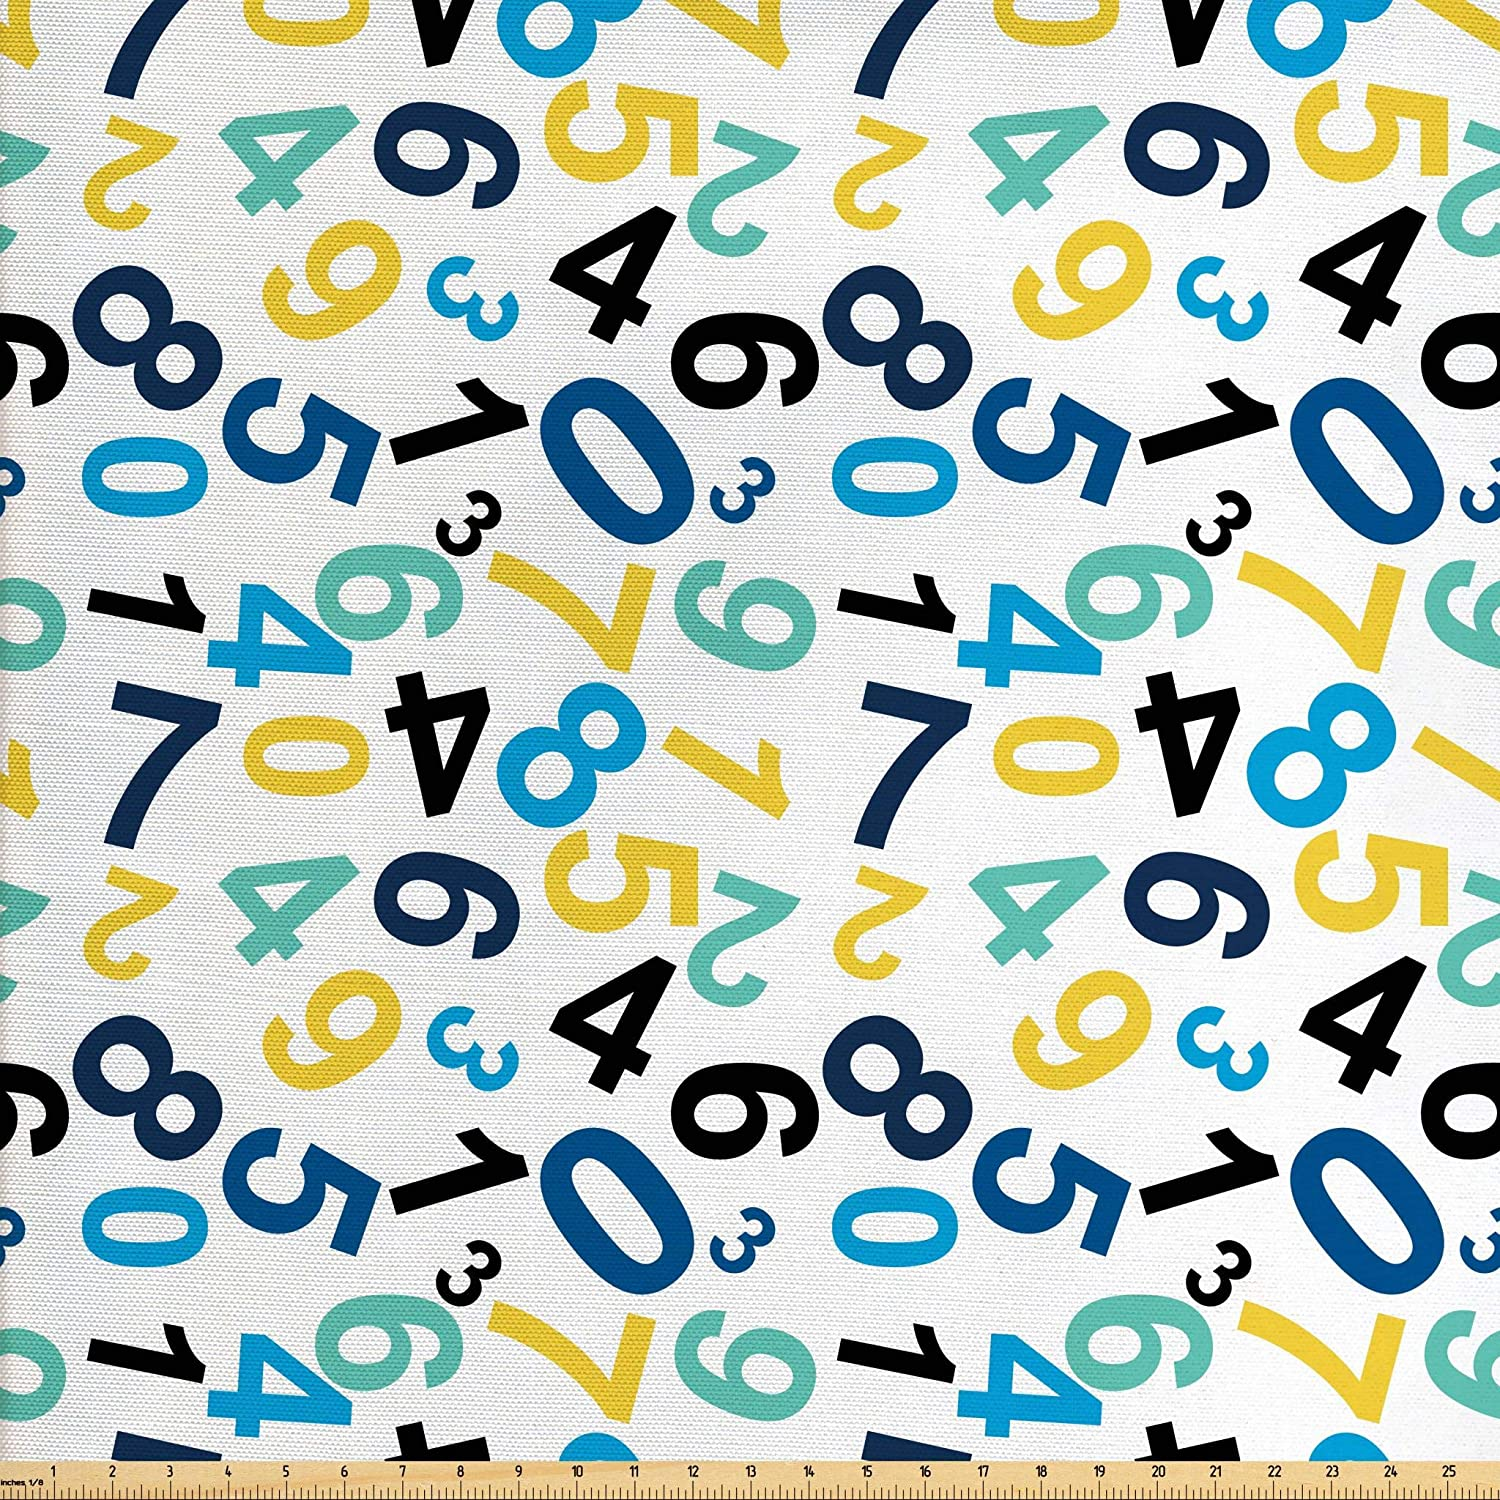 Ambesonne Numbers Fabric by The Yard, Math Themed Numbers Pattern Algebra School Learning Education Themes Colorful Image, Decorative Fabric for Upholstery and Home Accents, 5 Yards, Indigo Yellow